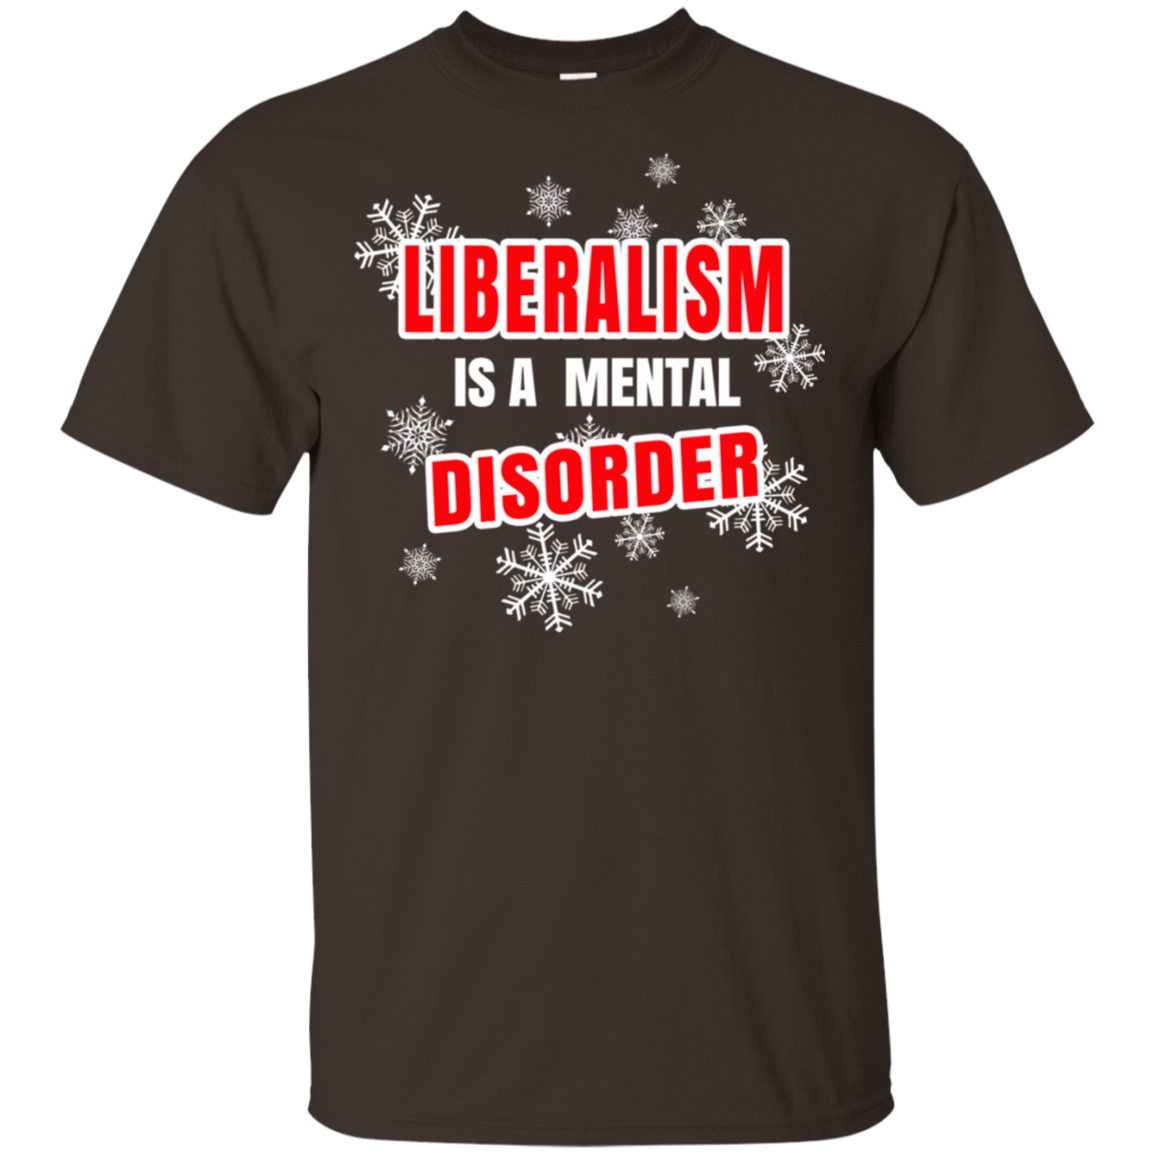 Liberalism Is A Mental Disorder 22-2283-74095504-12087 - Tee Ript